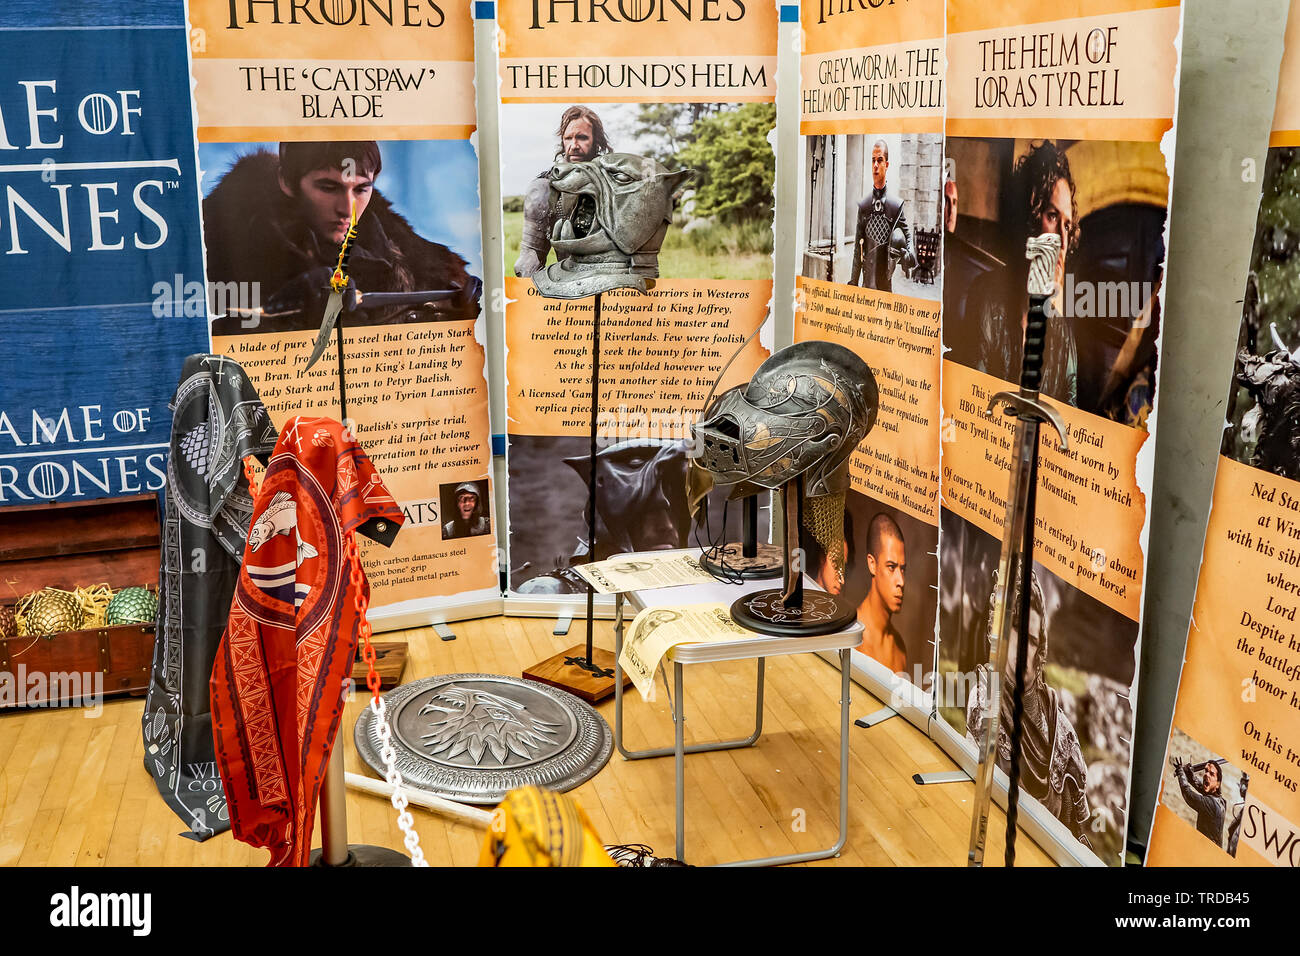 Great Yarmouth Comicon 2019 – A Game of Thrones exhibit at the Comicon held in the seaside town of Great Yarmouth, Norfolk - Stock Image